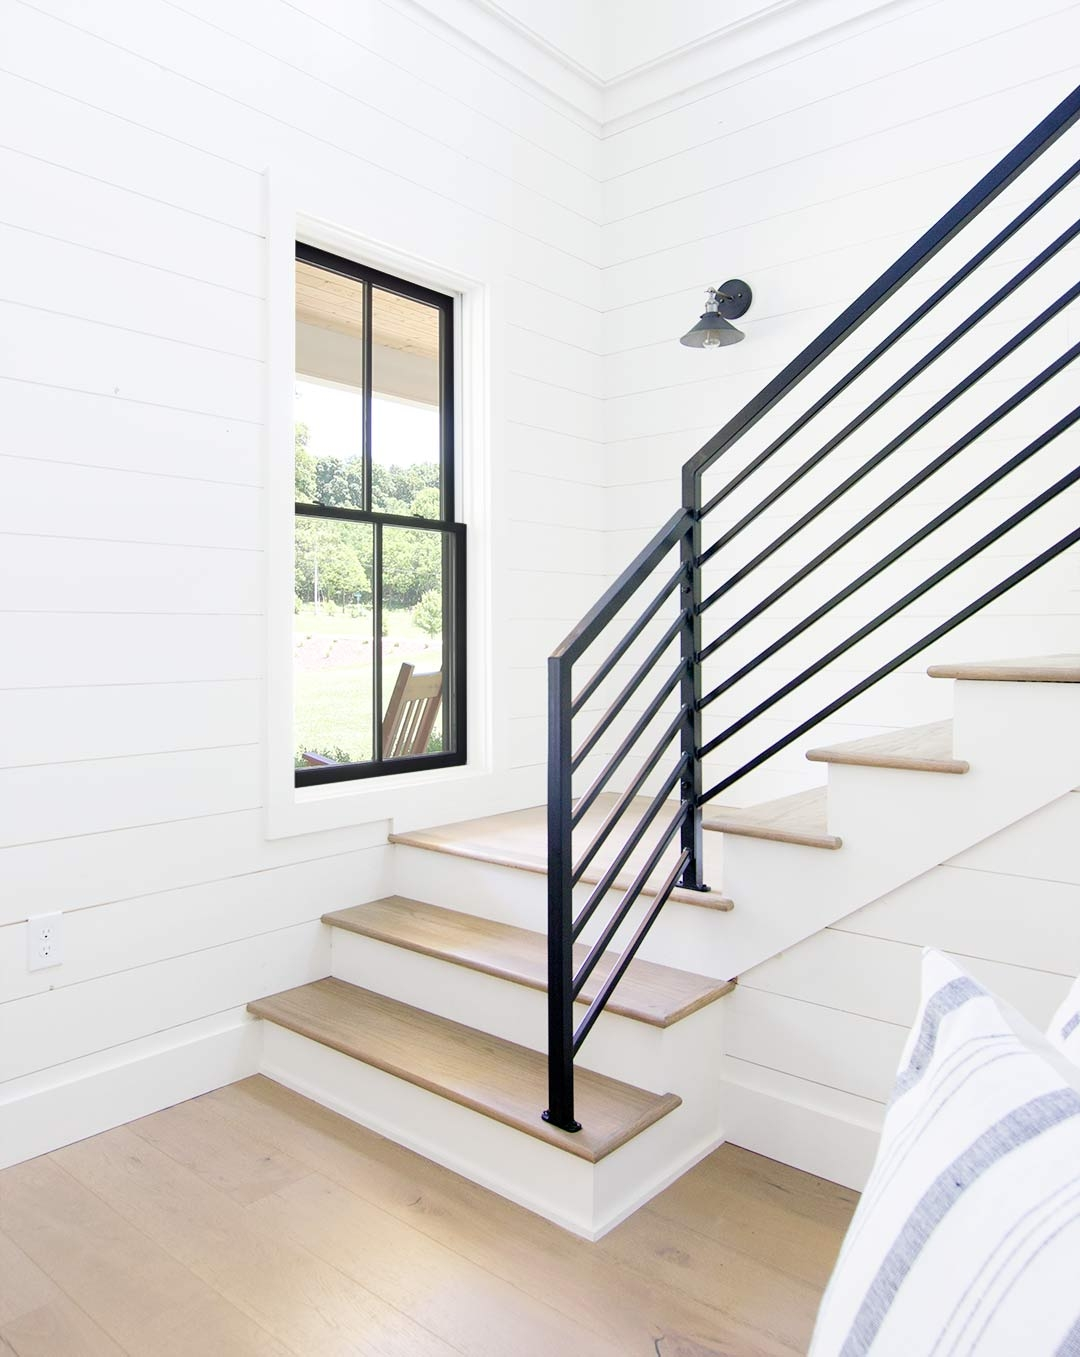 How To Match Solid Stair Treads To Prefinished Hardwood Flooring   Hardwood Stair Treads Price   Flooring   Risers   Basement Stairs   Prefinished   Stair Parts